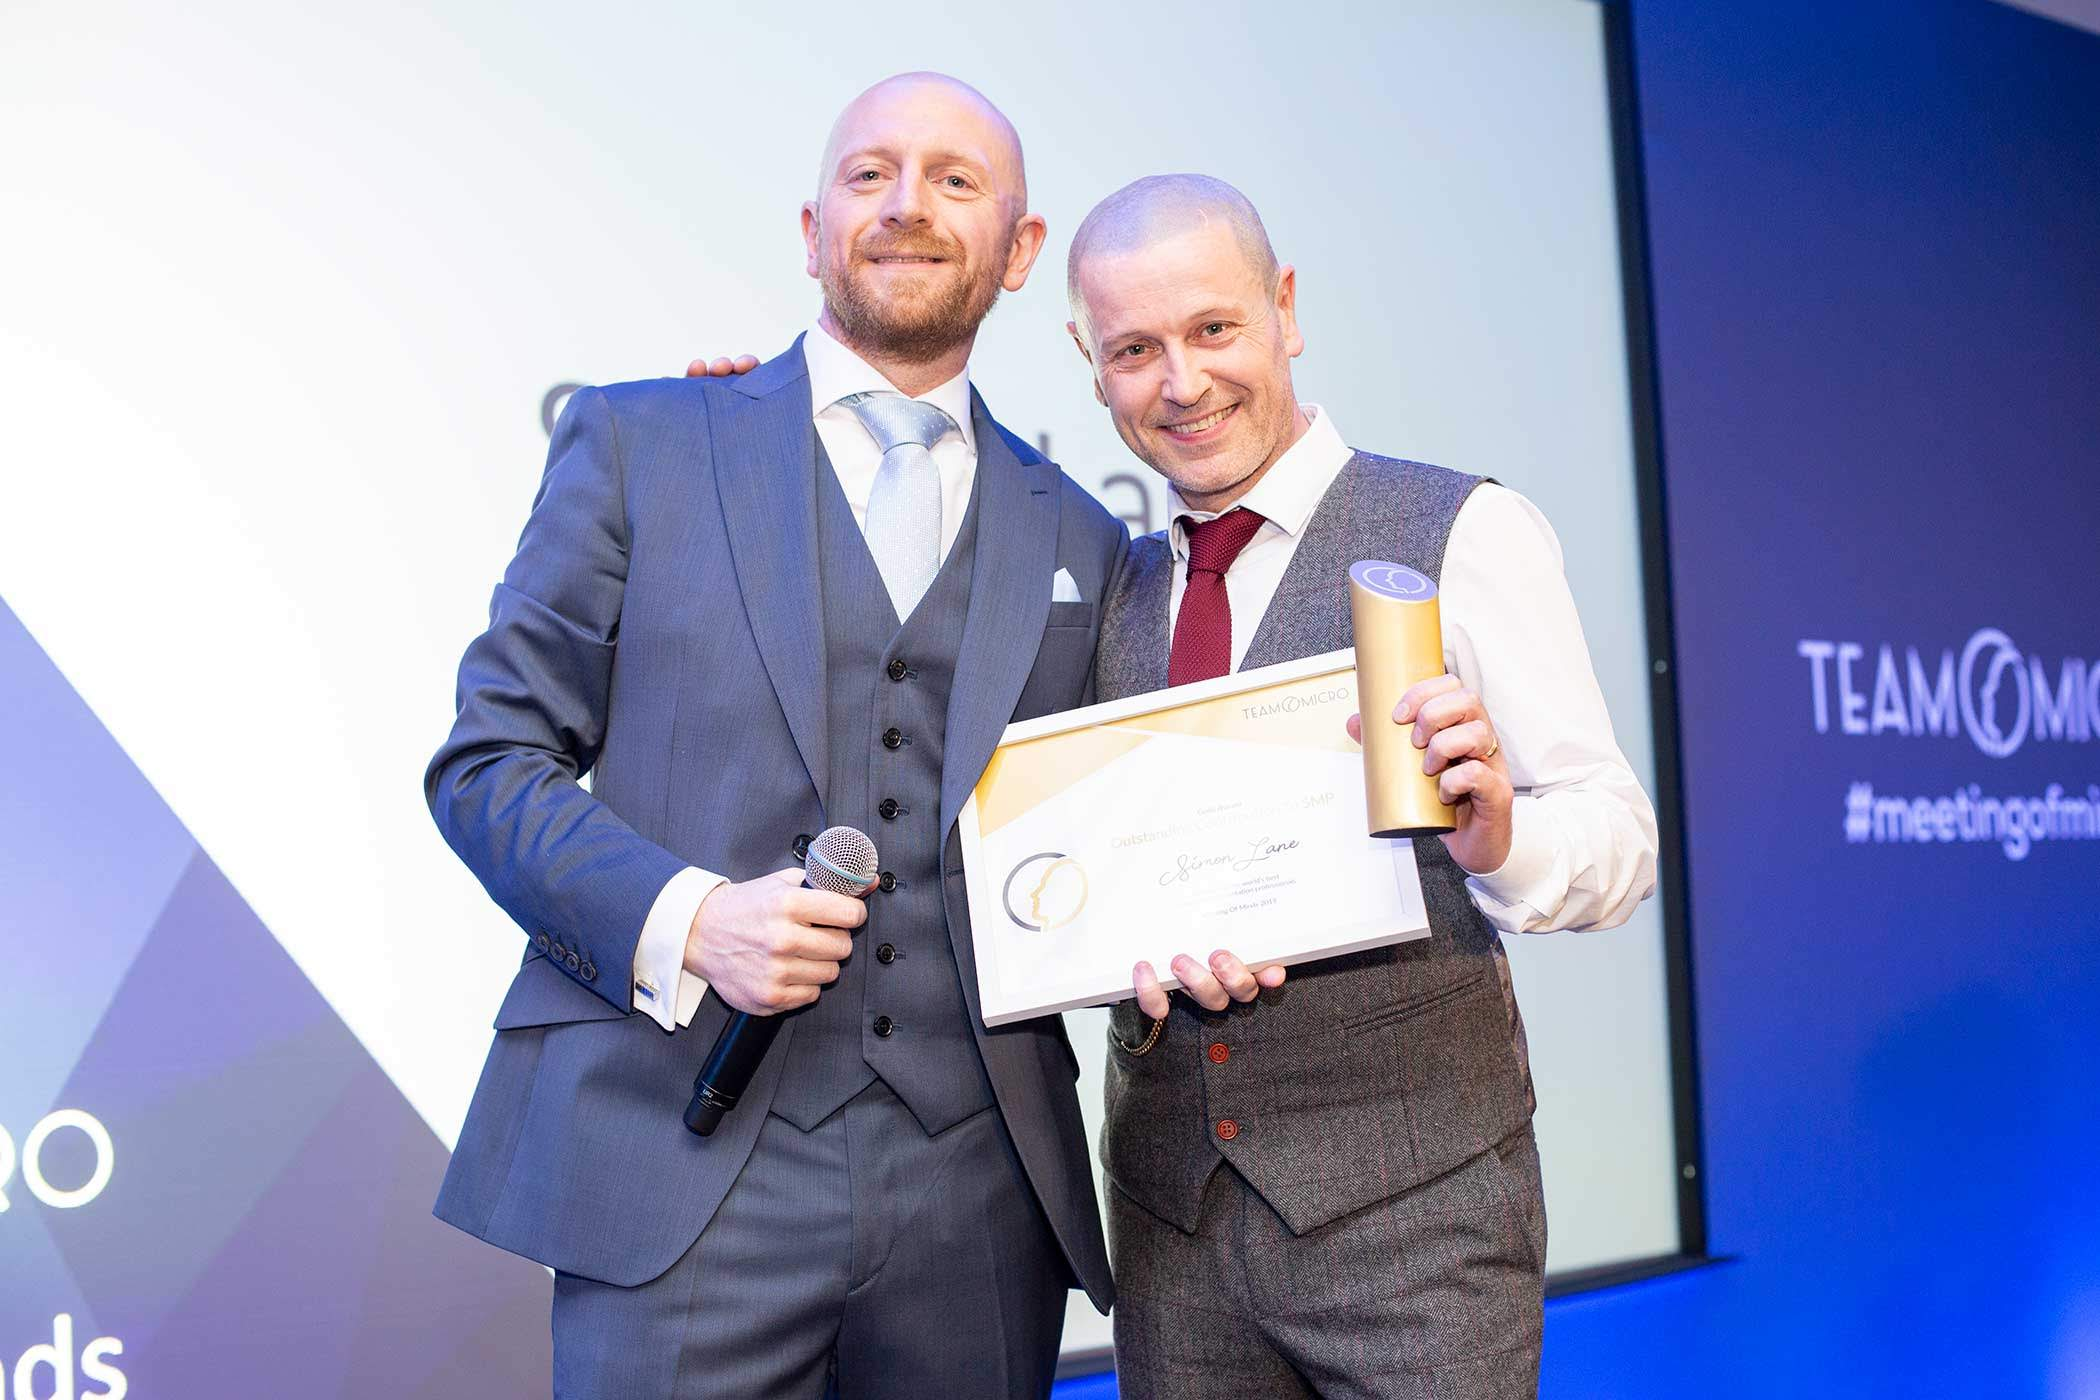 Damien Porter & Simon Lane at Team Micro Awards